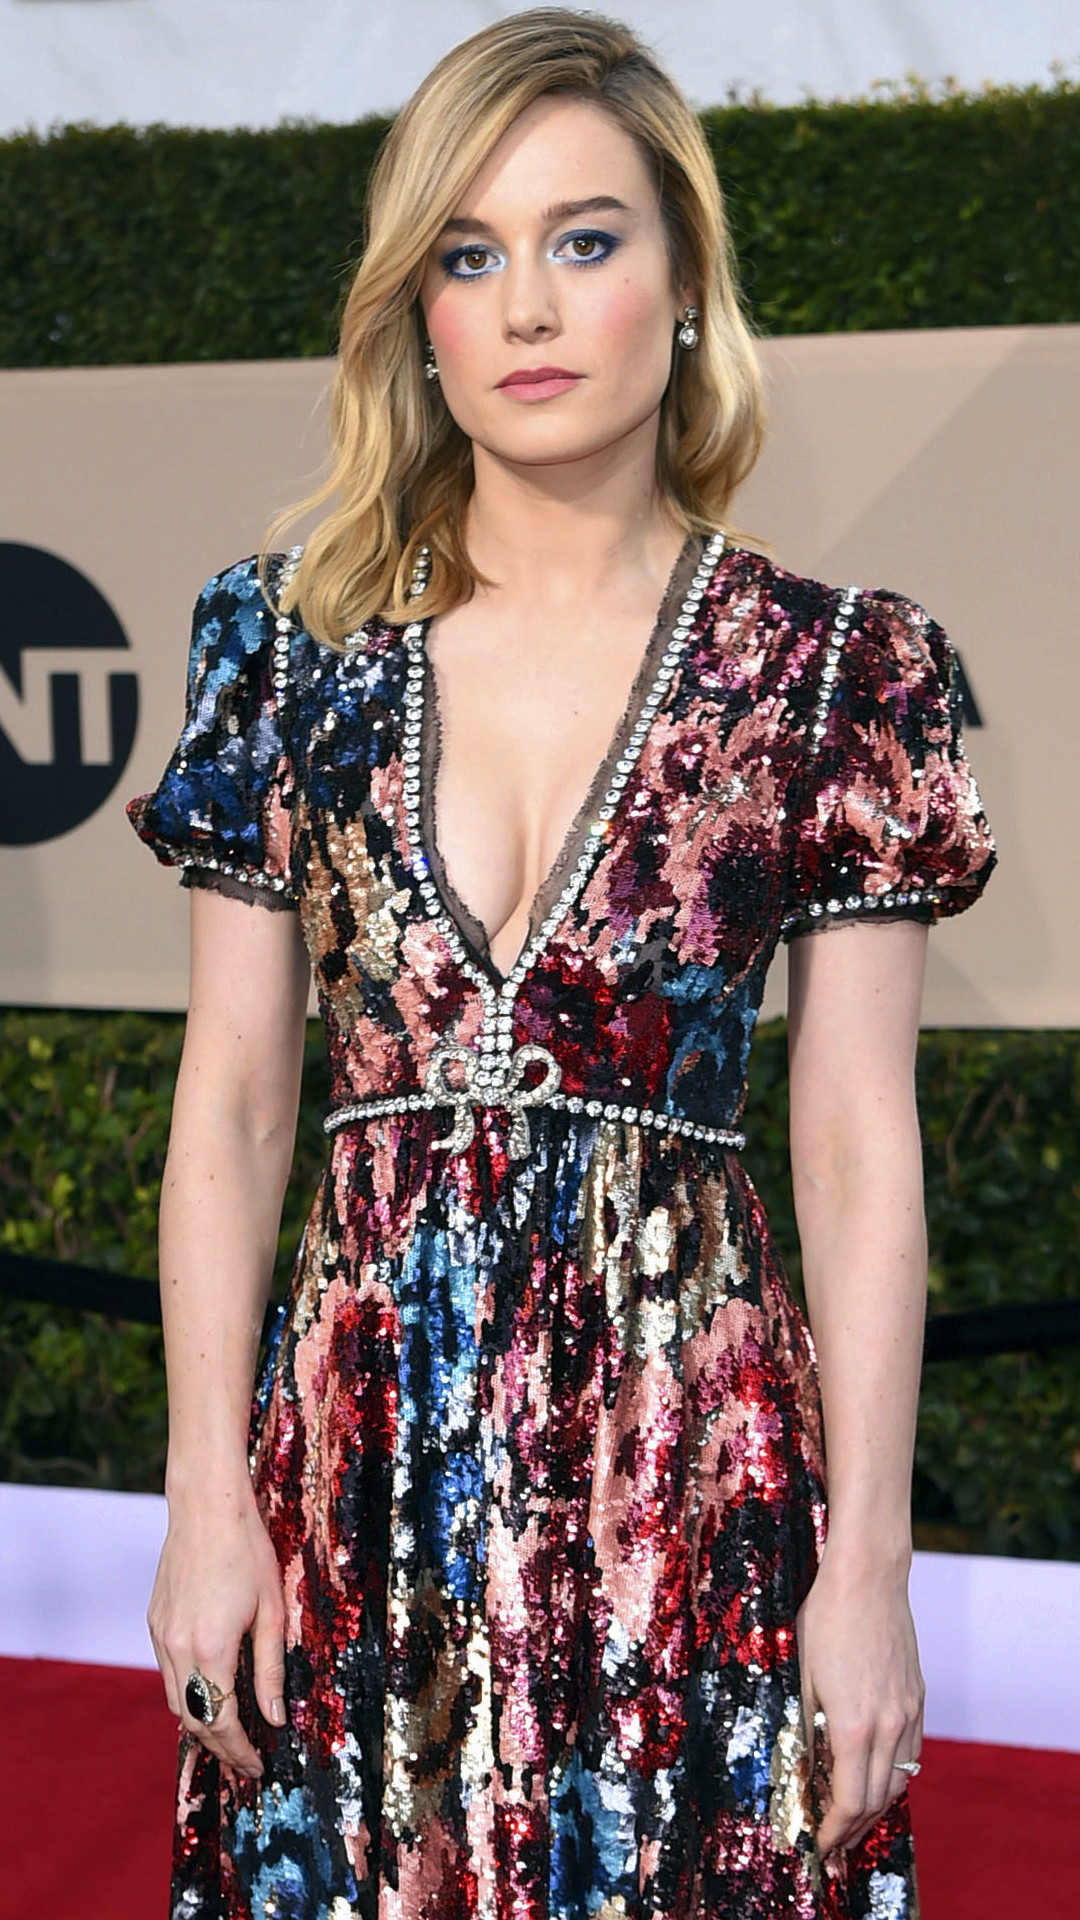 Brie Larson, 2018 SAG Awards, Red Carpet Fashions